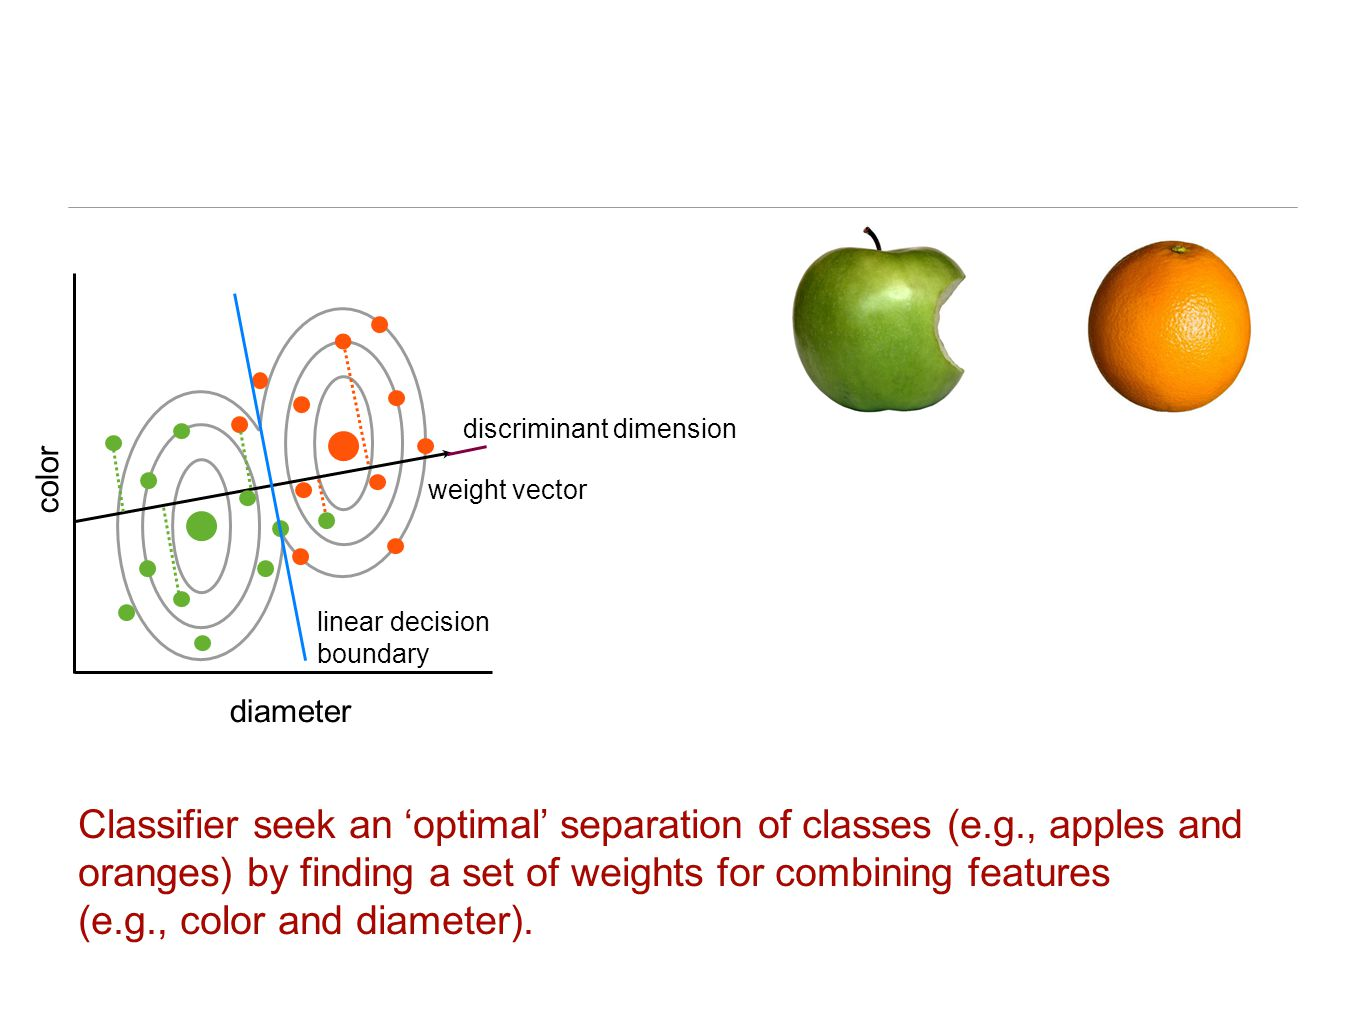 Classifier seek an 'optimal' separation of classes (e.g., apples and